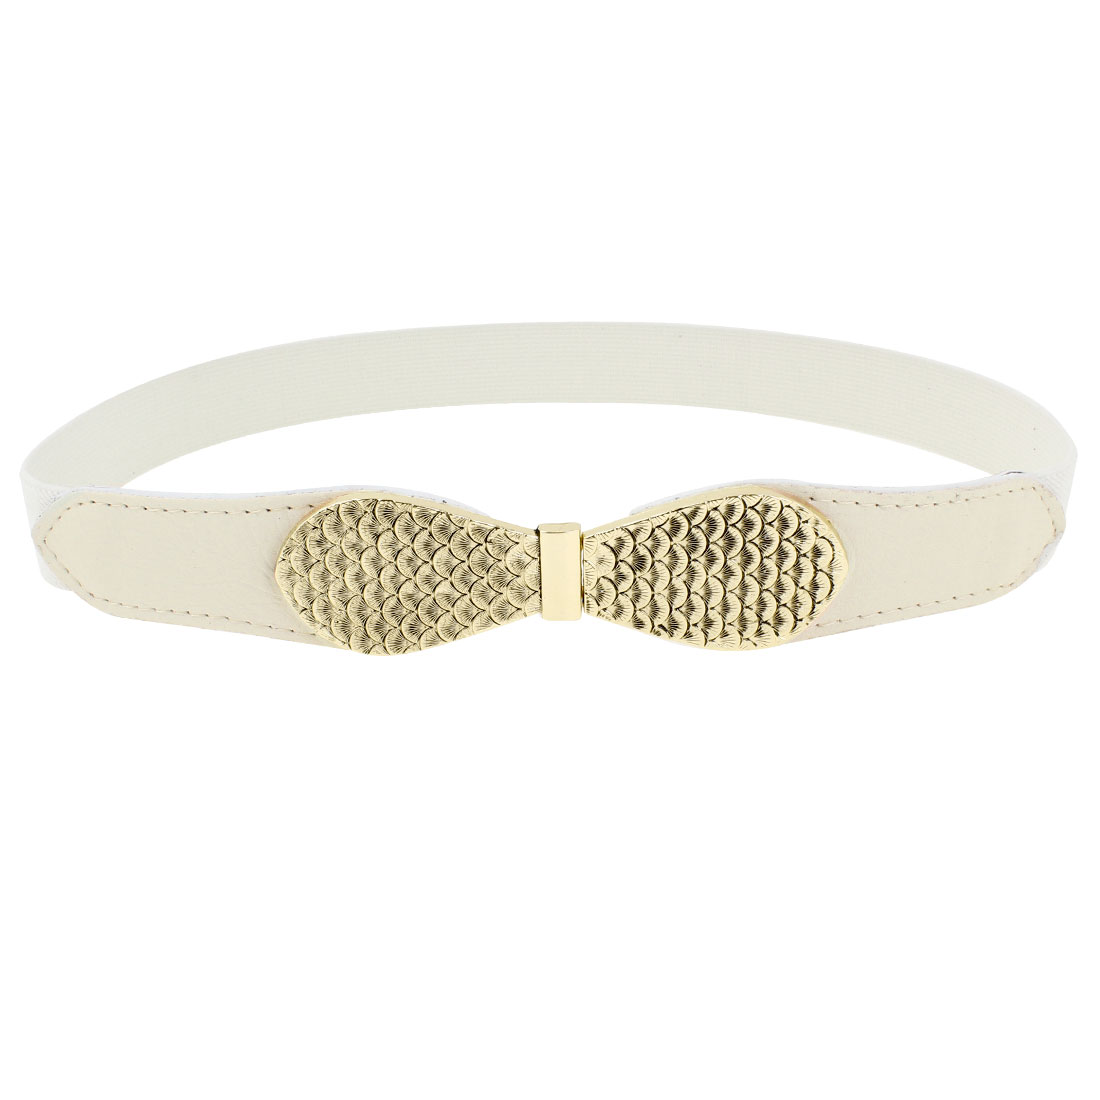 Fish Scale Pattern Metal Interlocking Buckle Skinny Cinch Belt White for Women